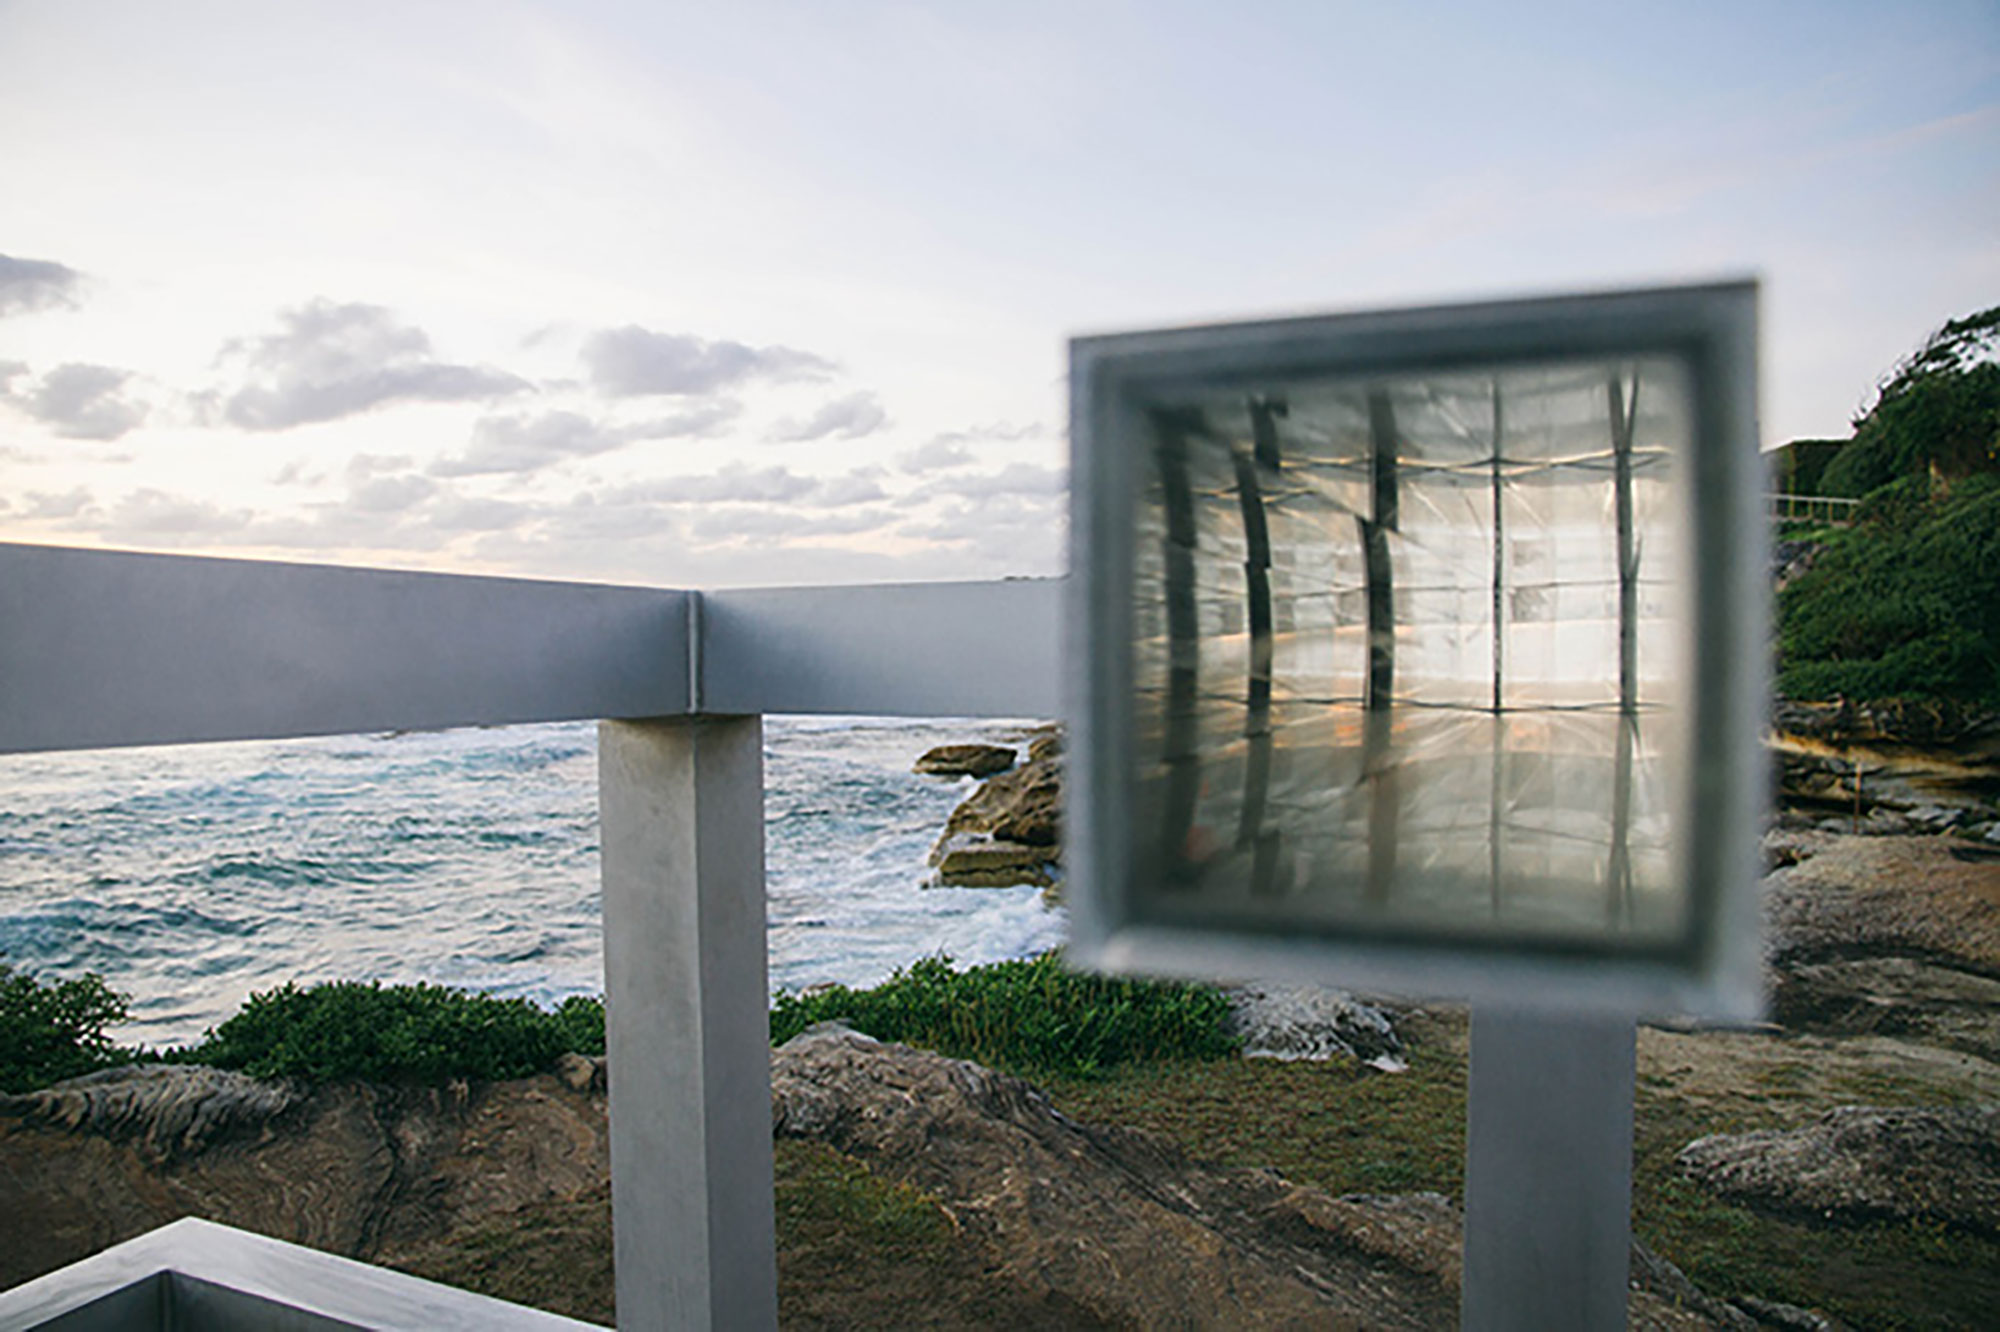 William Feuerman, OUTSIDE-IN, Sculpture by the Sea, Bondi, 2015